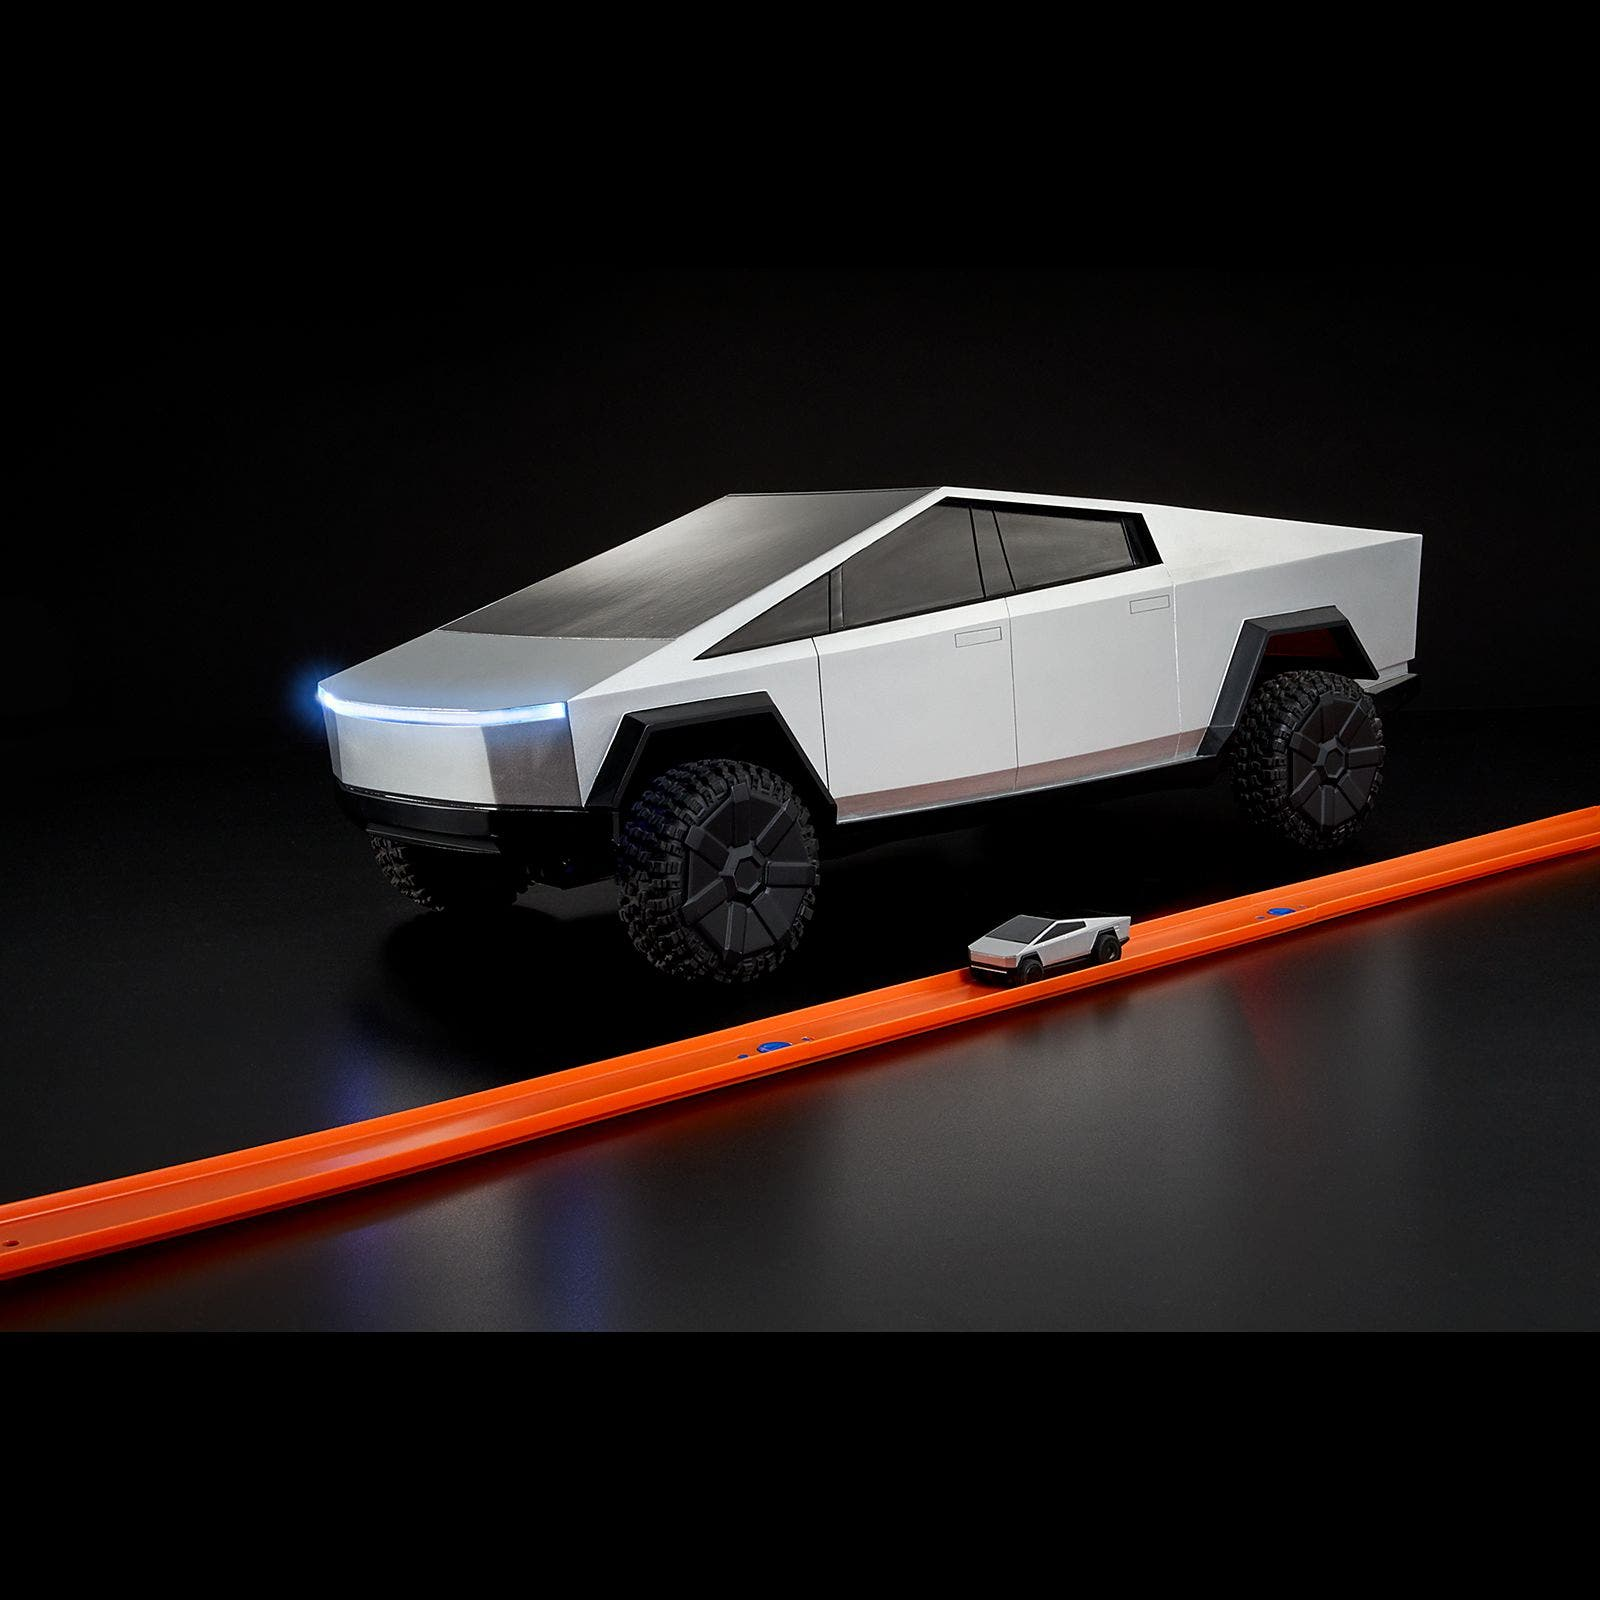 Mattel Partners With Tesla To Make RC Toys